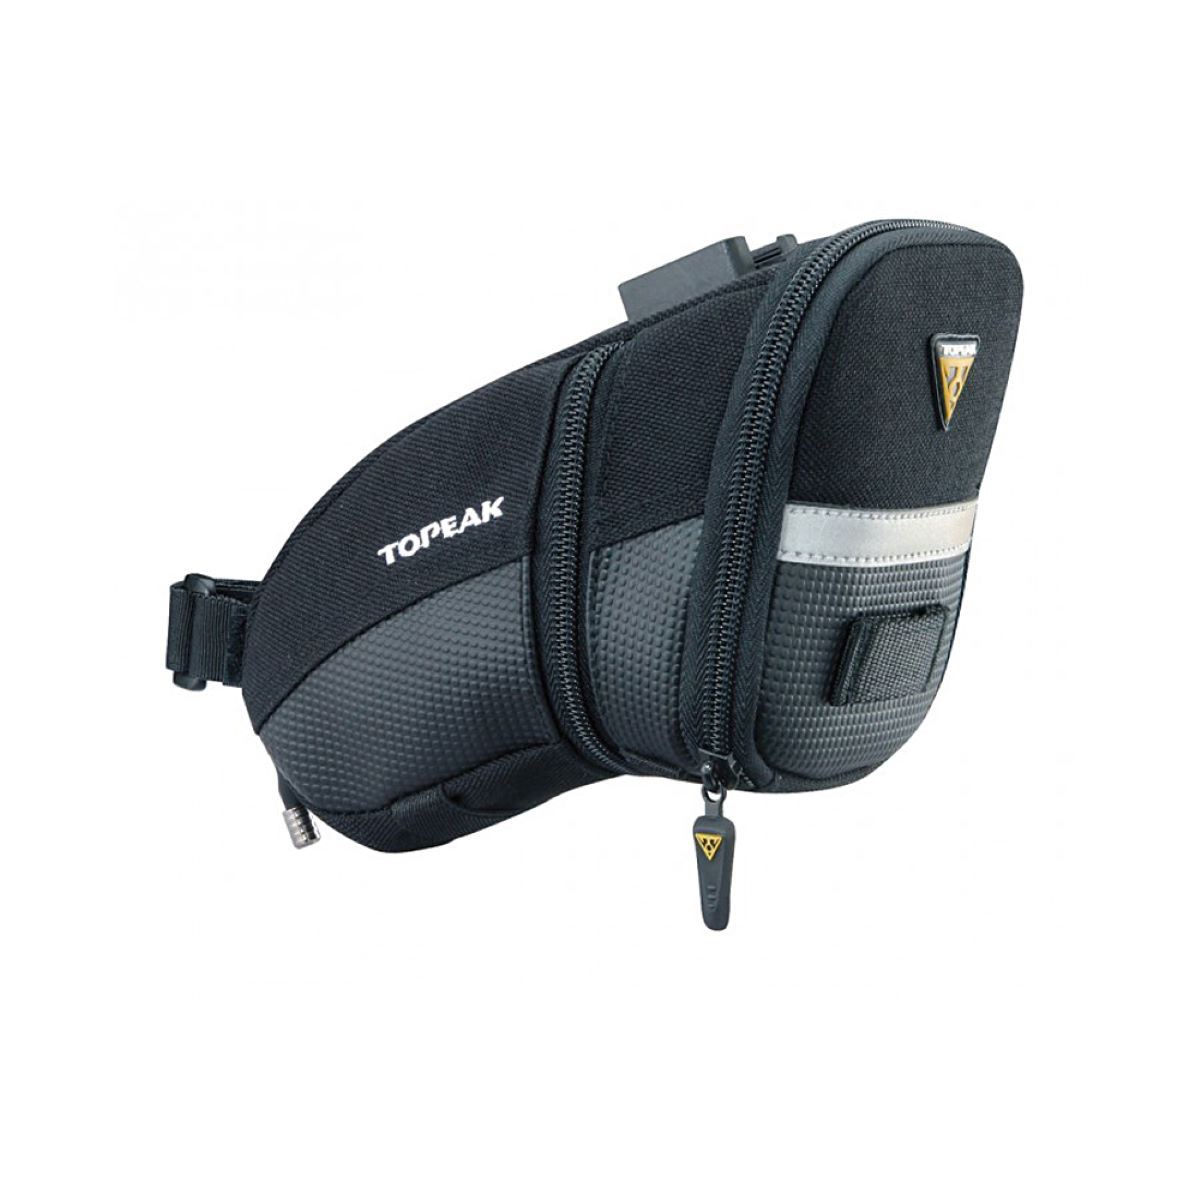 Sacoche de selle Topeak Aero Wedge (fixation clip-on, taille M) - M Noir Sacoches de selle